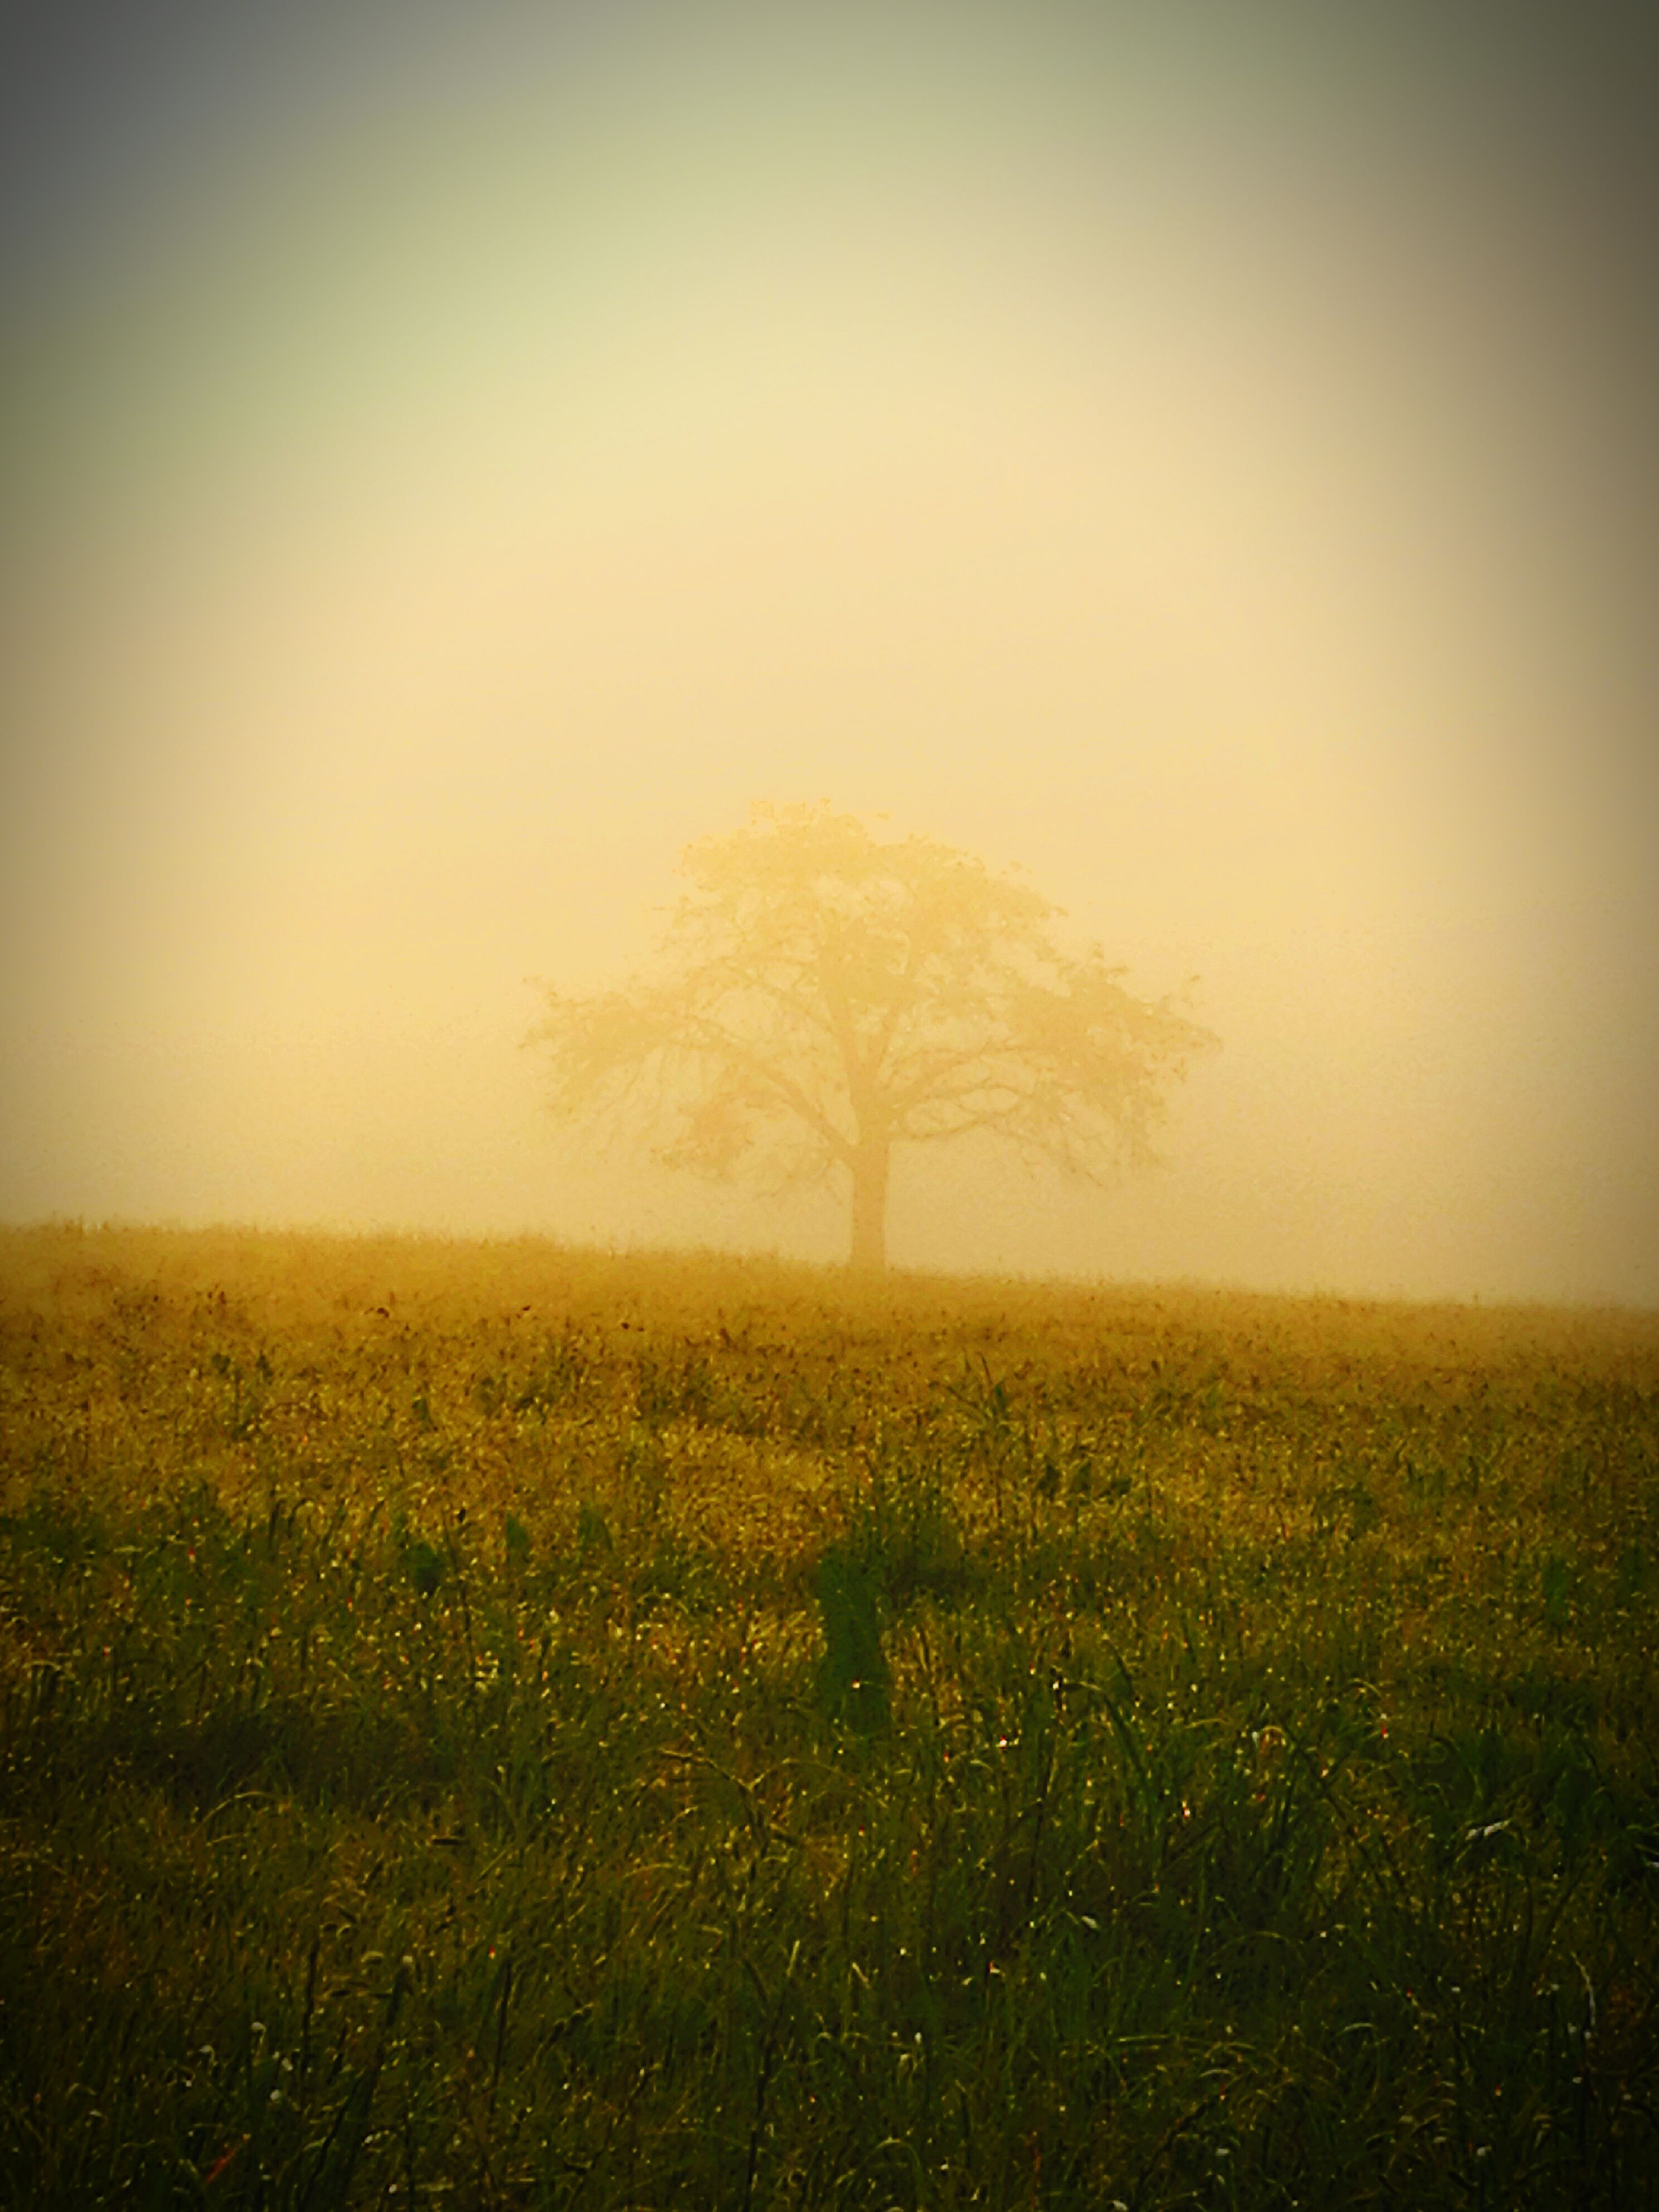 nature, landscape, beauty in nature, tranquil scene, field, tranquility, fog, tree, scenics, mist, grass, outdoors, hazy, no people, yellow, lone, day, sky